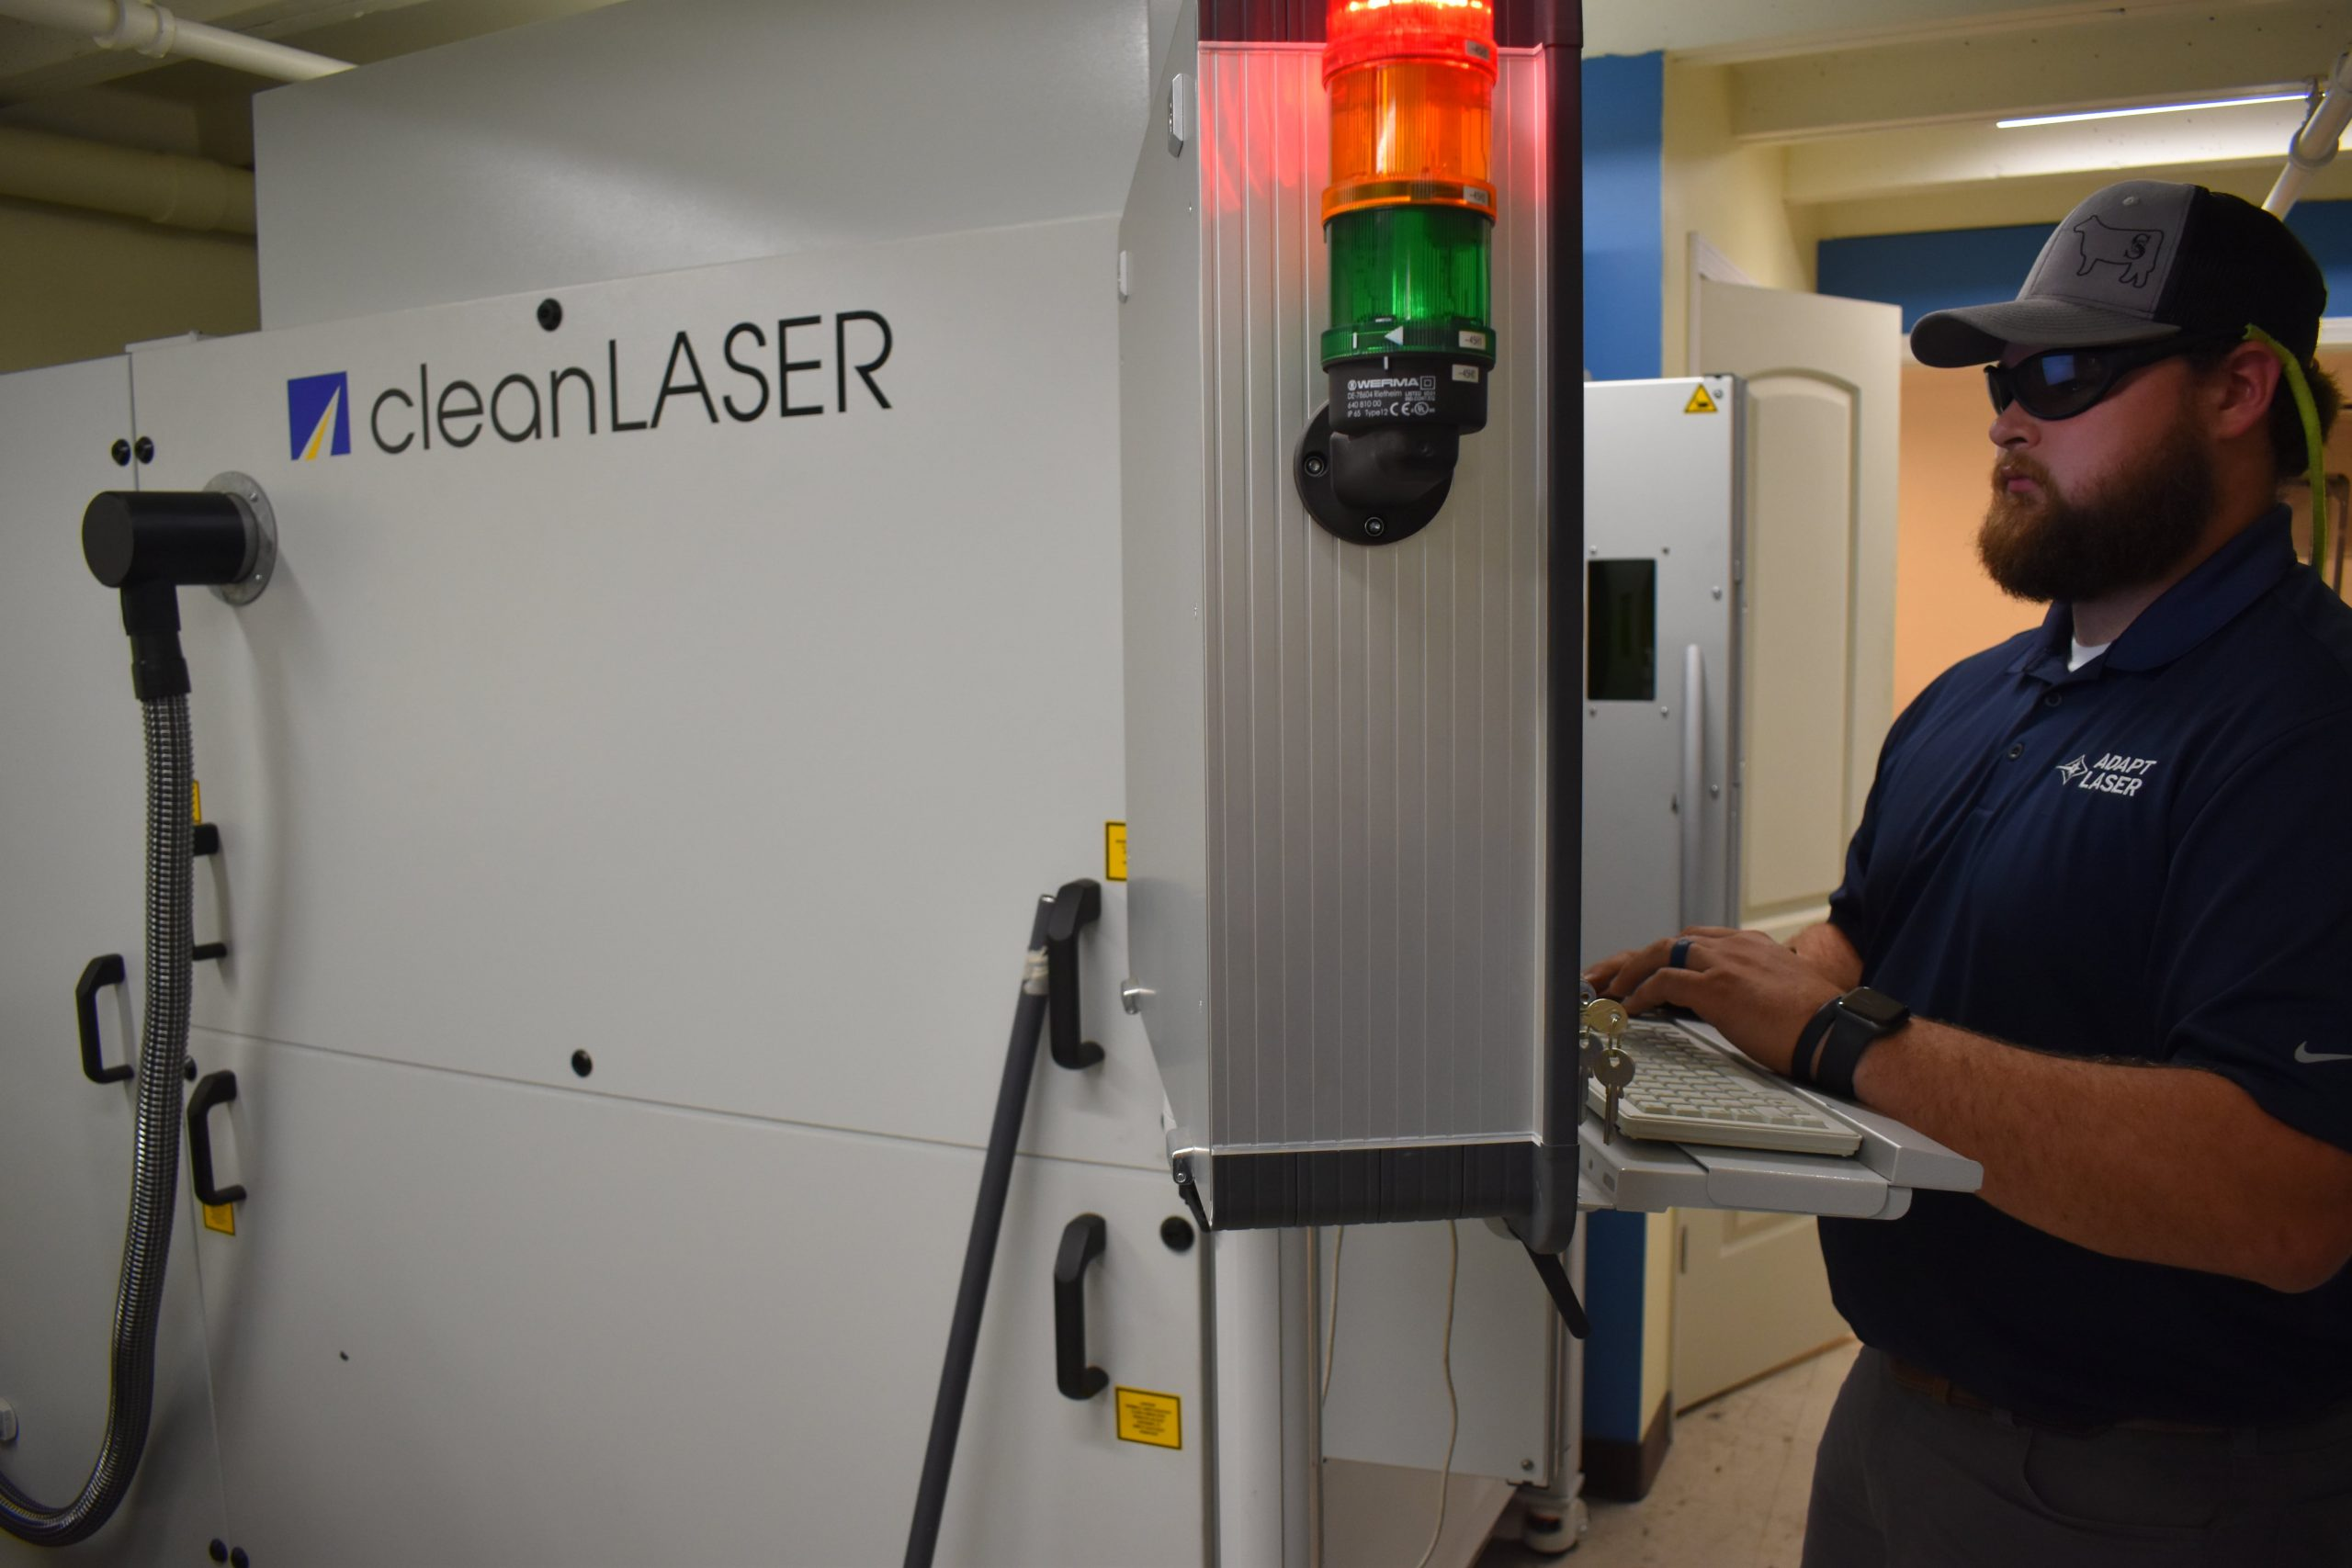 service tech stands at keypad in front of large Cleancell laser